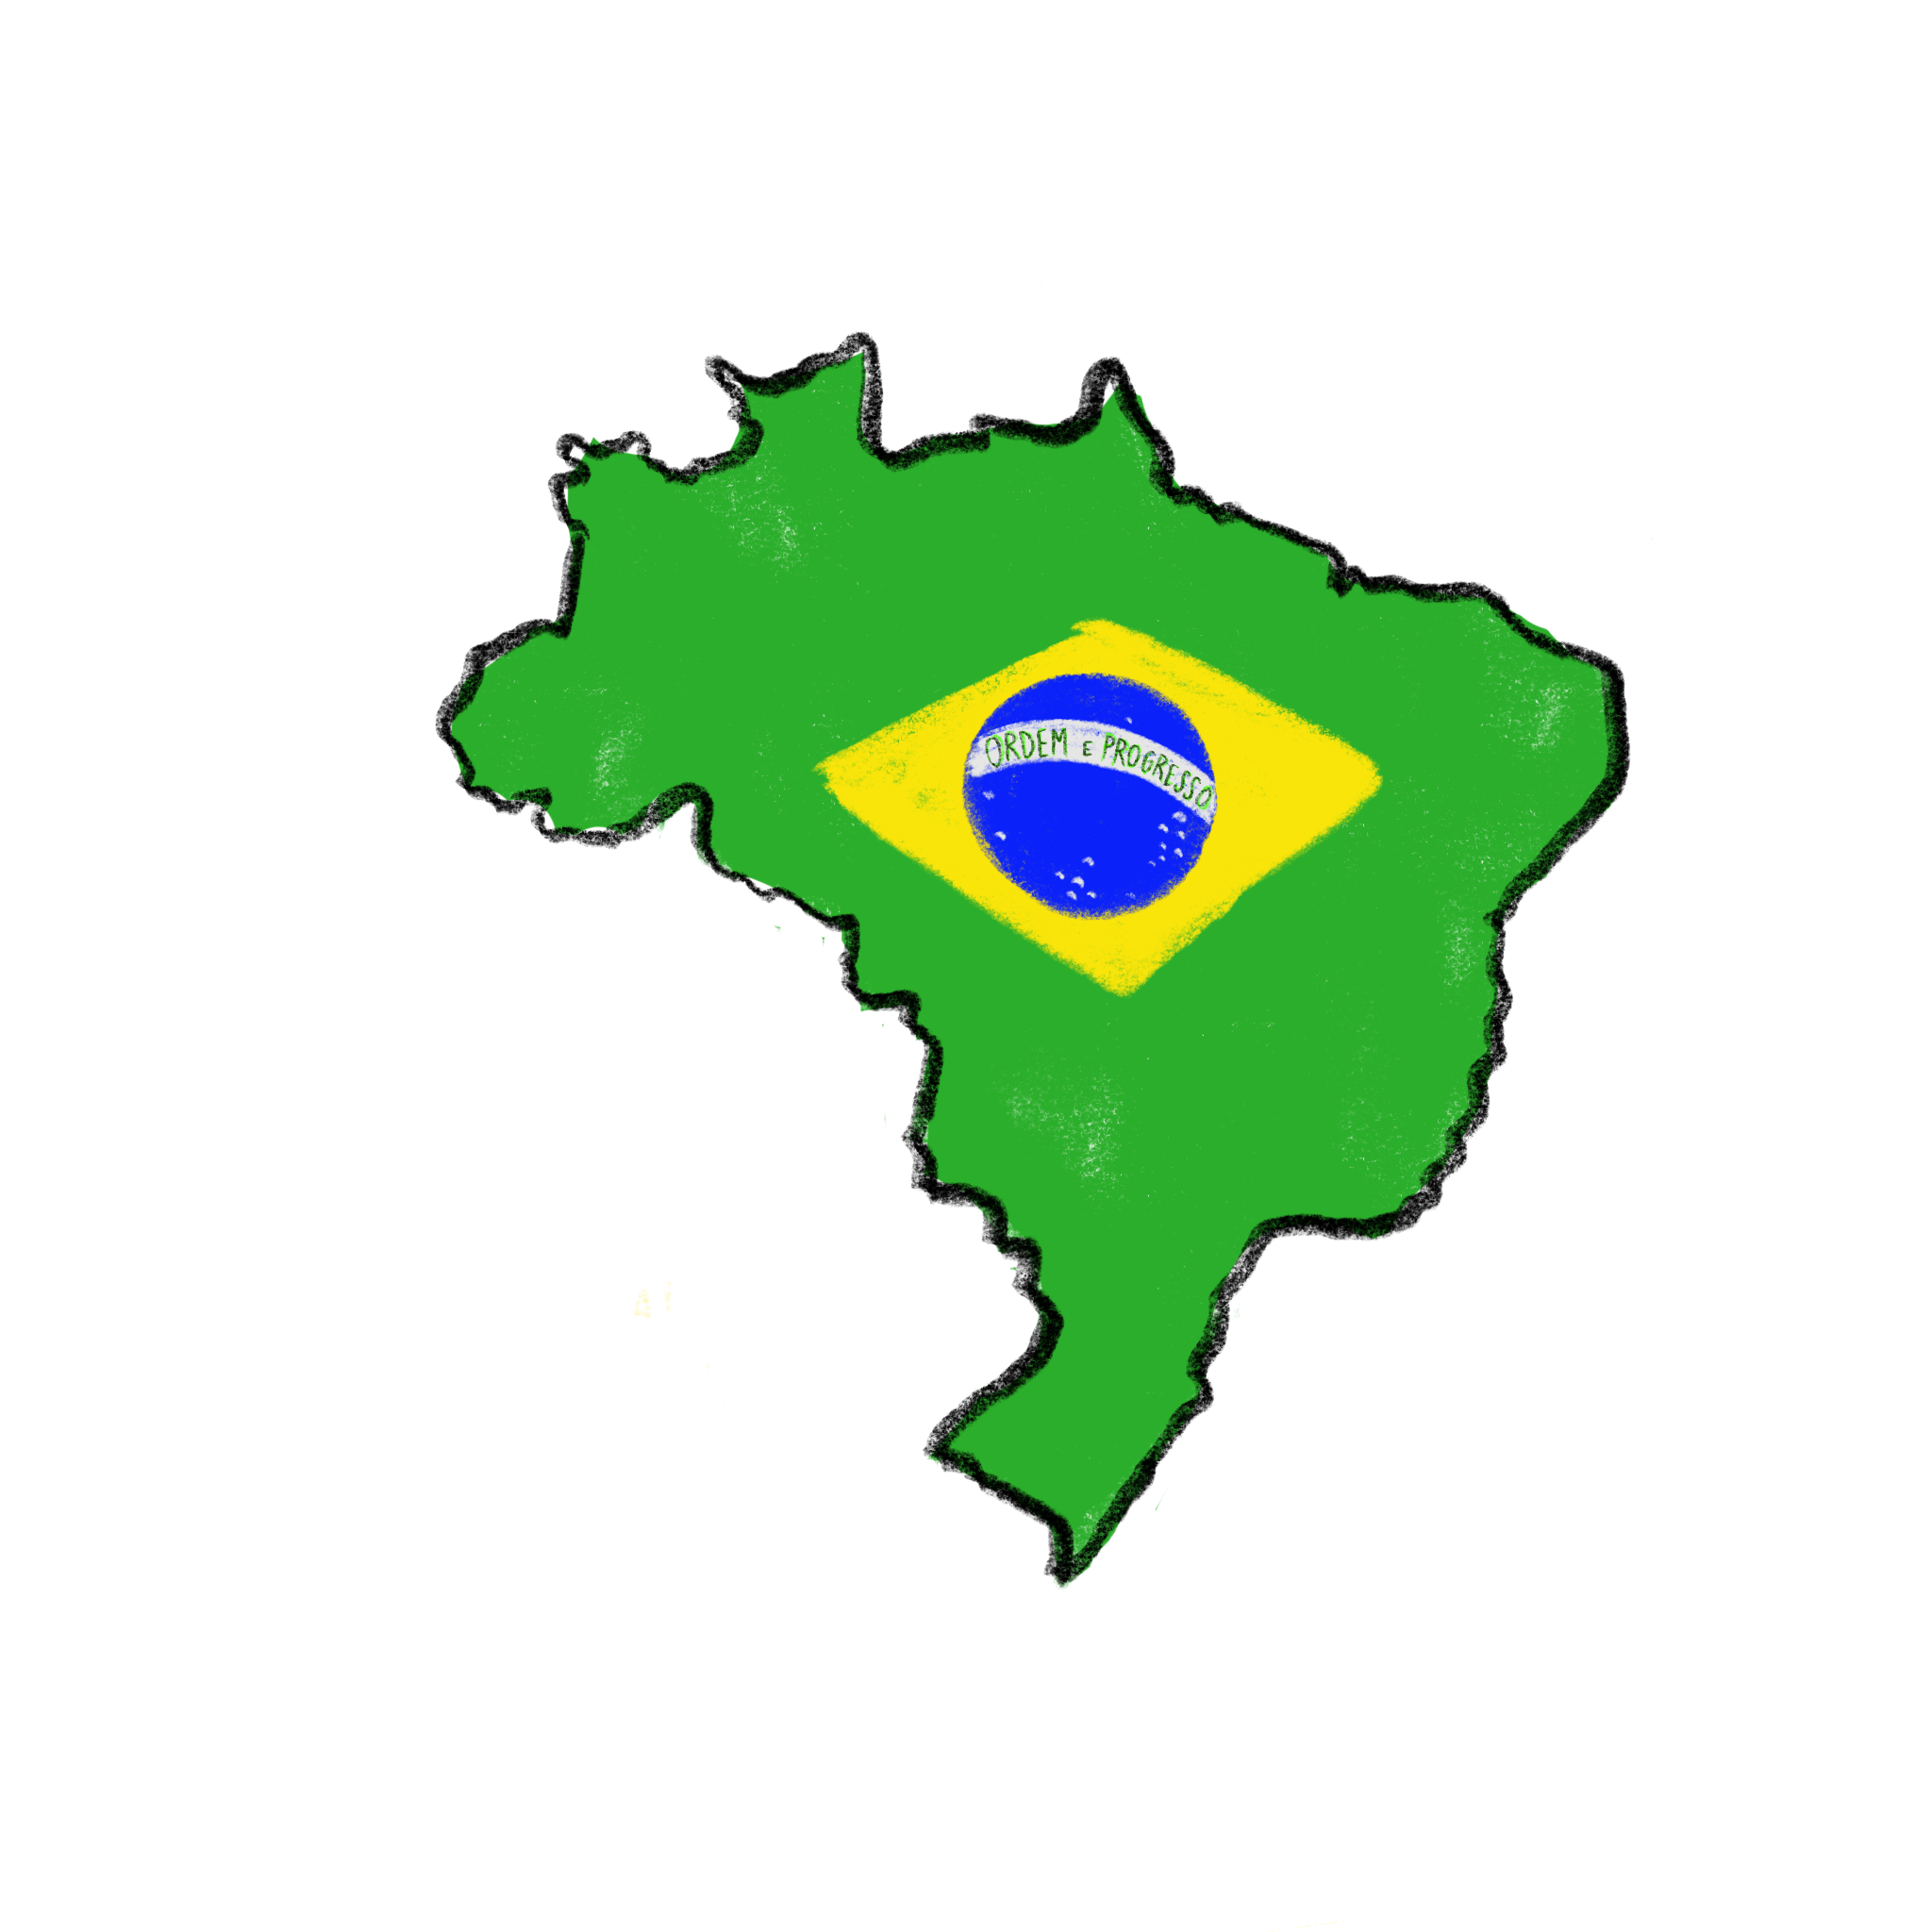 digital illustration of the country of Brazil with their flag in the middle of it.